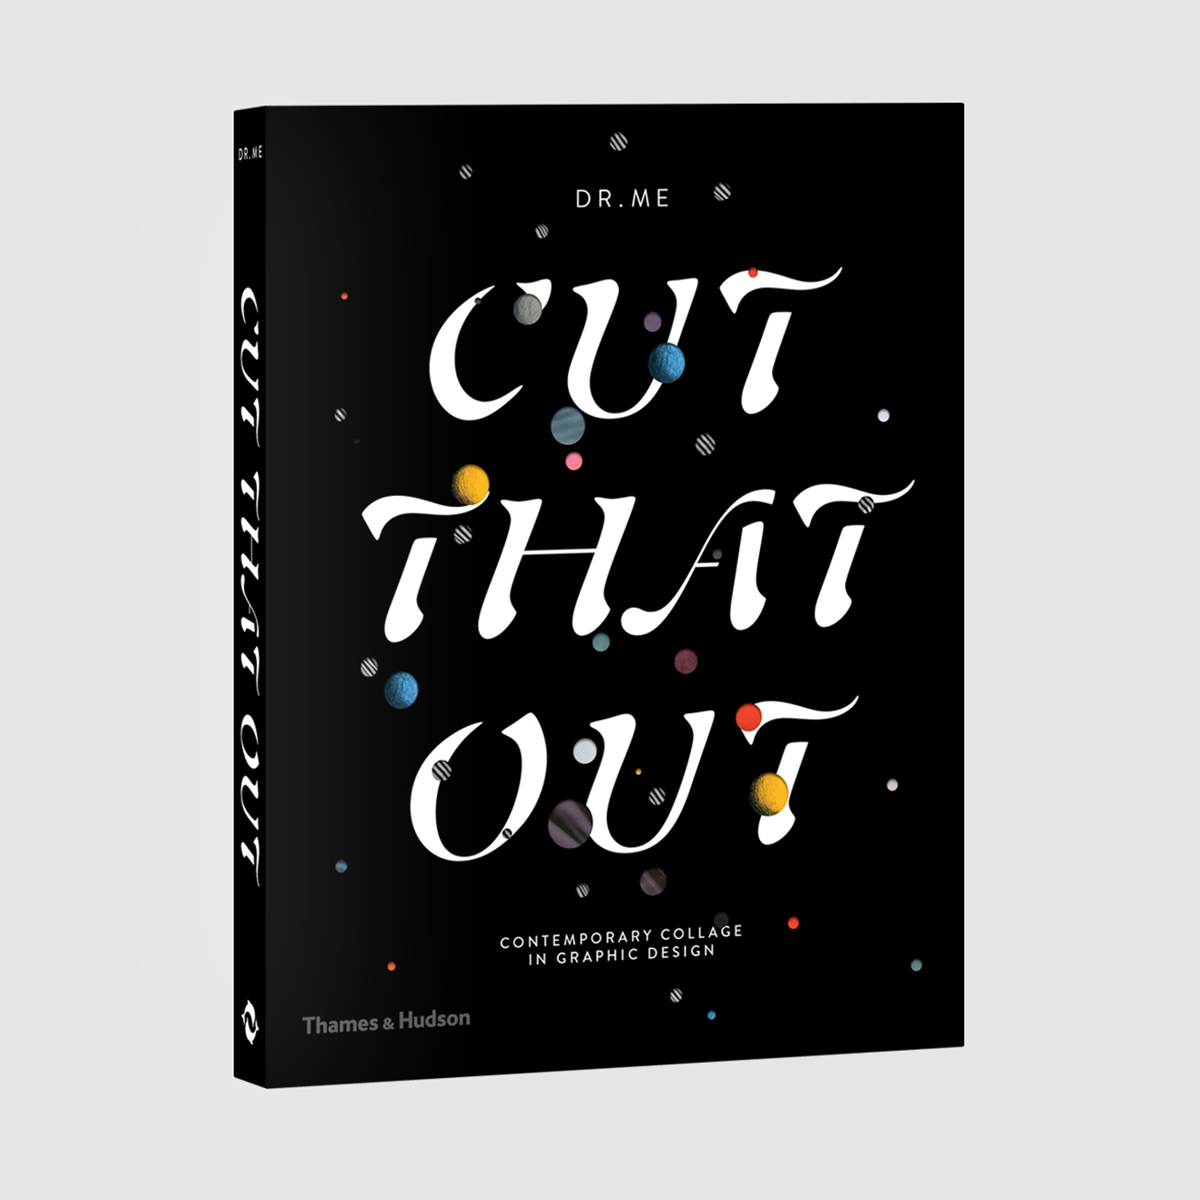 Cover for Cut That Out: Contemporary Collage in Graphic Design, by DR.ME